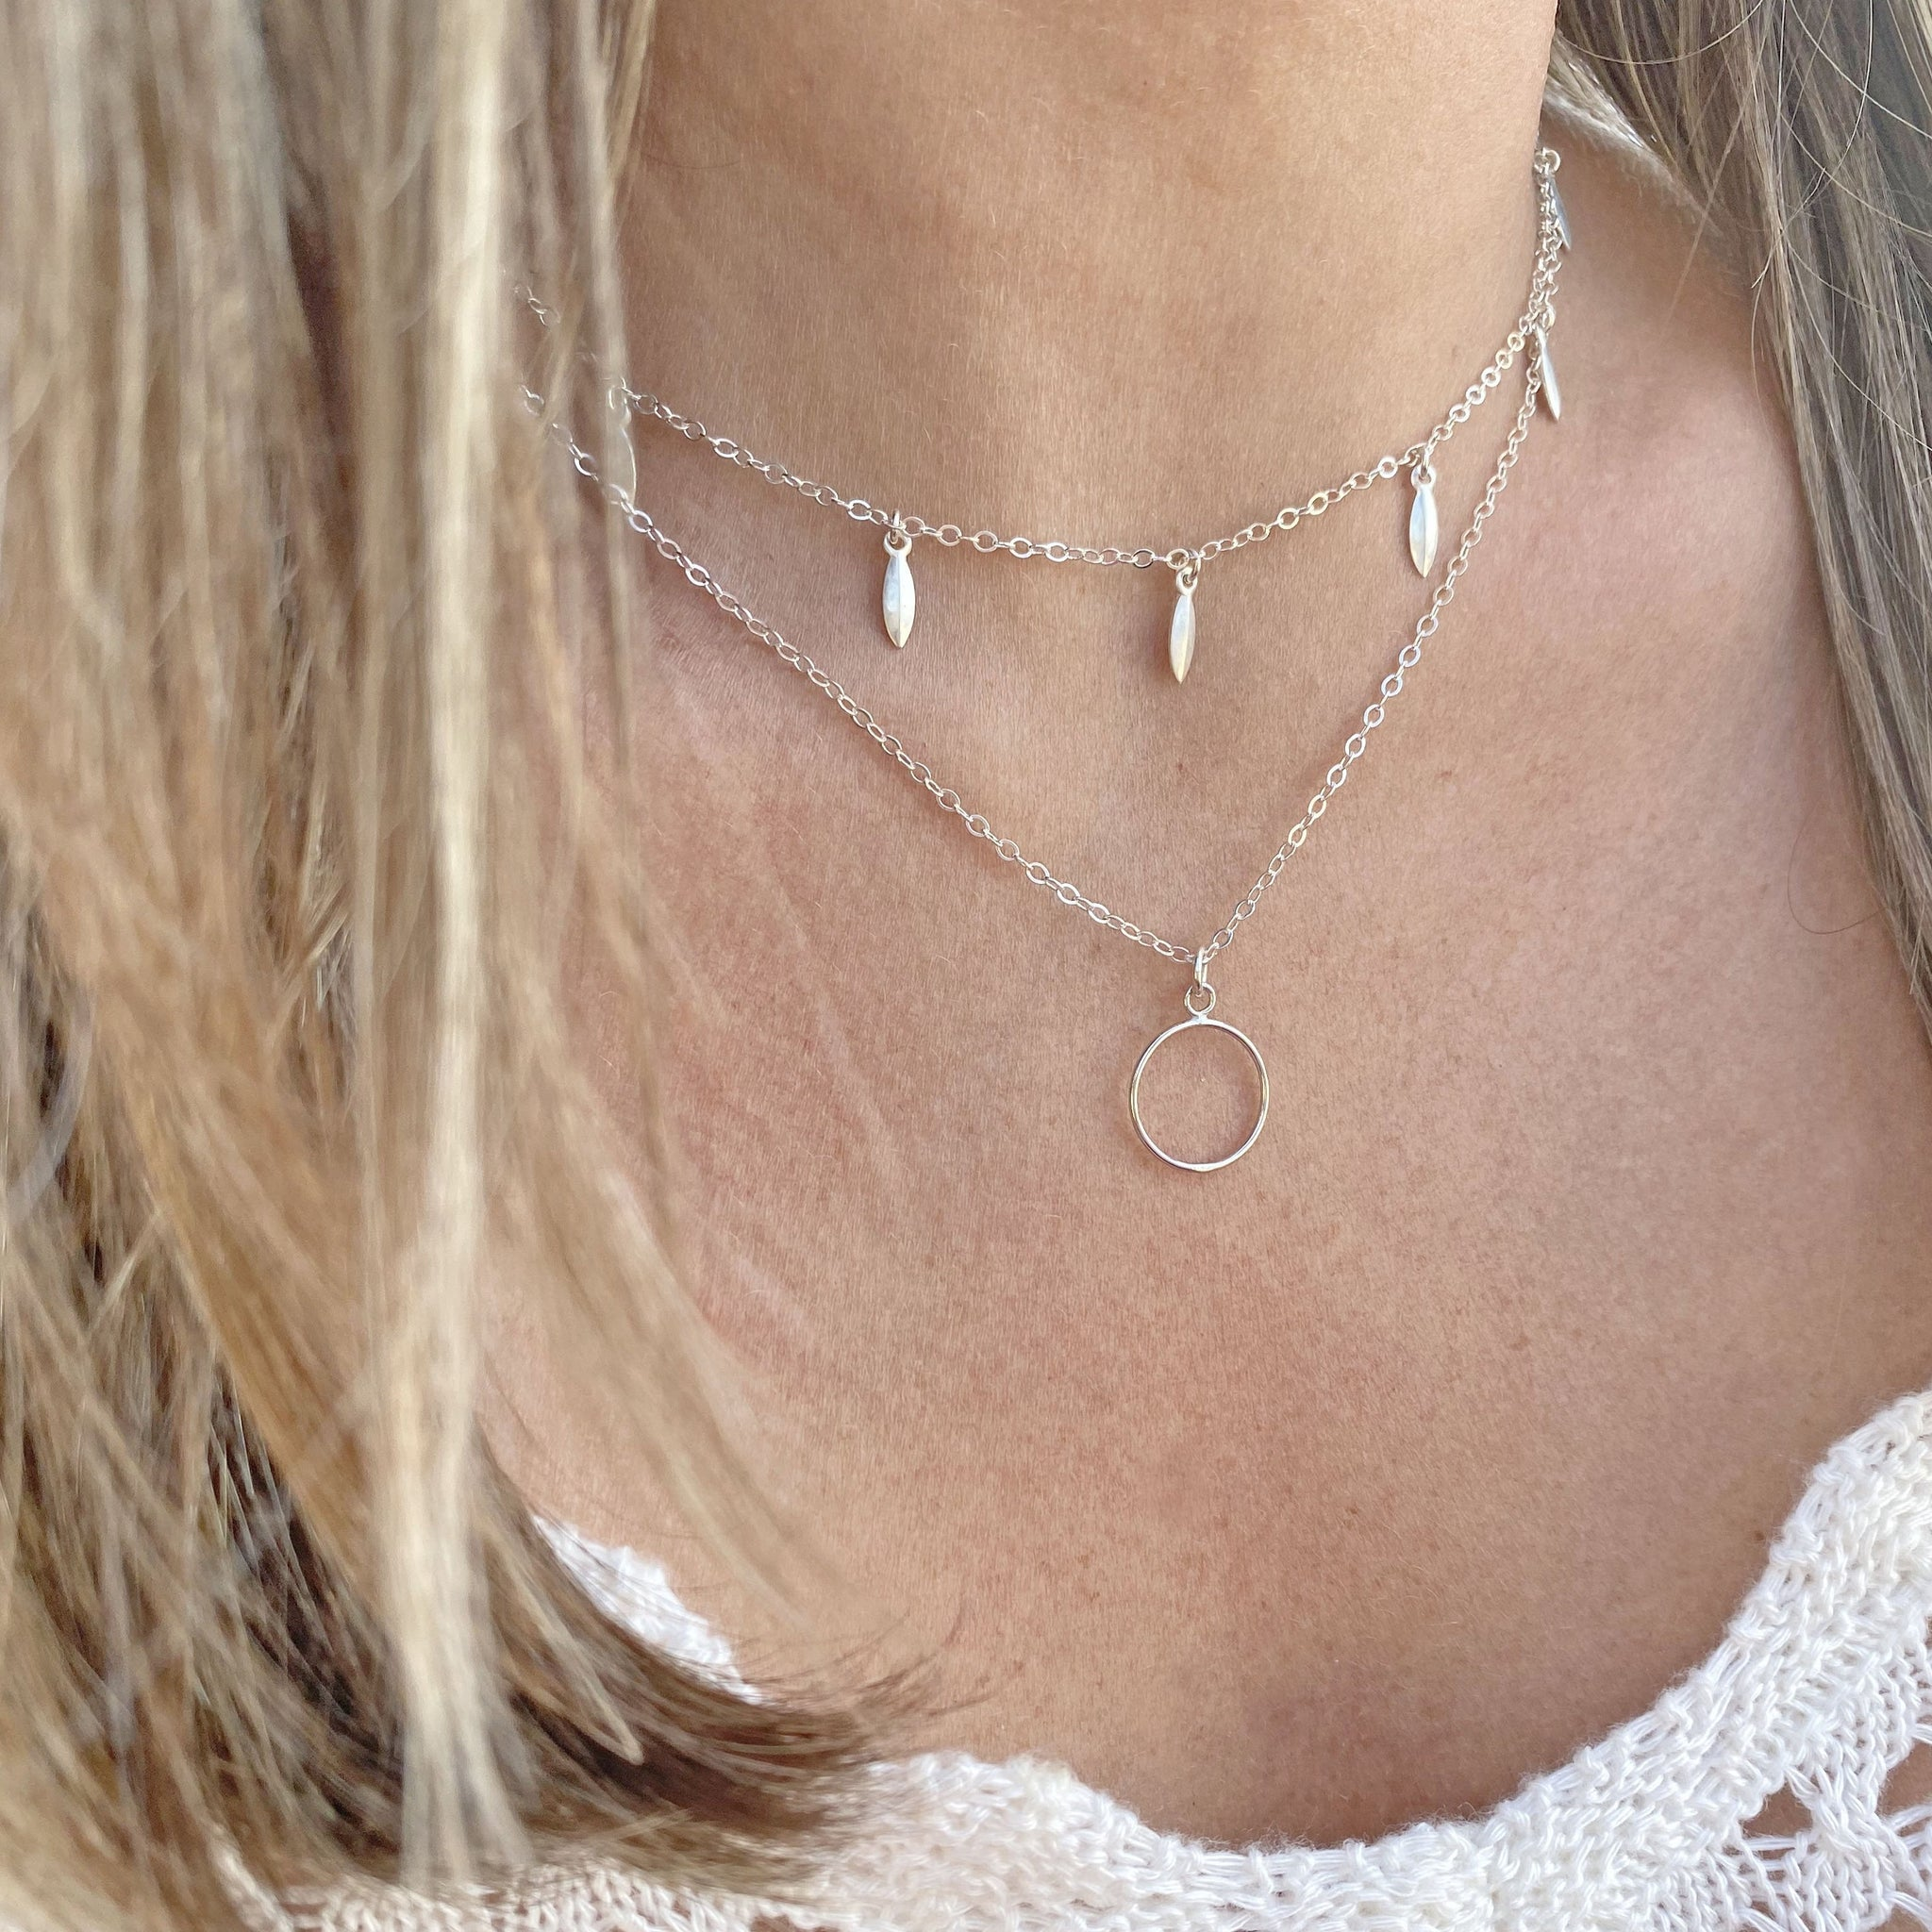 Sterling Silver Charm Necklace by Taissa Maleck from My Jewelry Is Online Store